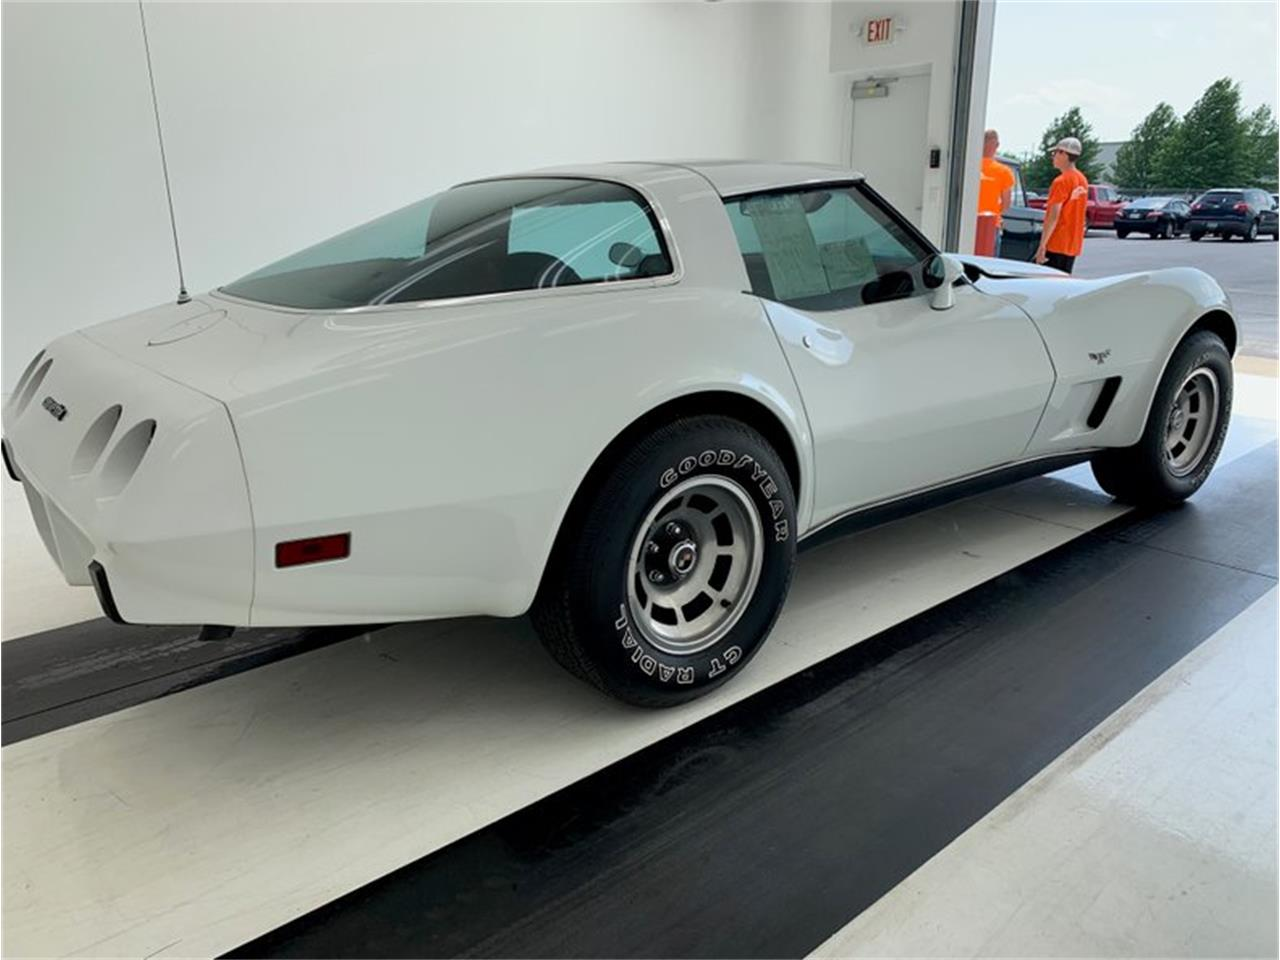 Large Picture of 1978 Chevrolet Corvette located in North Carolina Auction Vehicle - QJKW